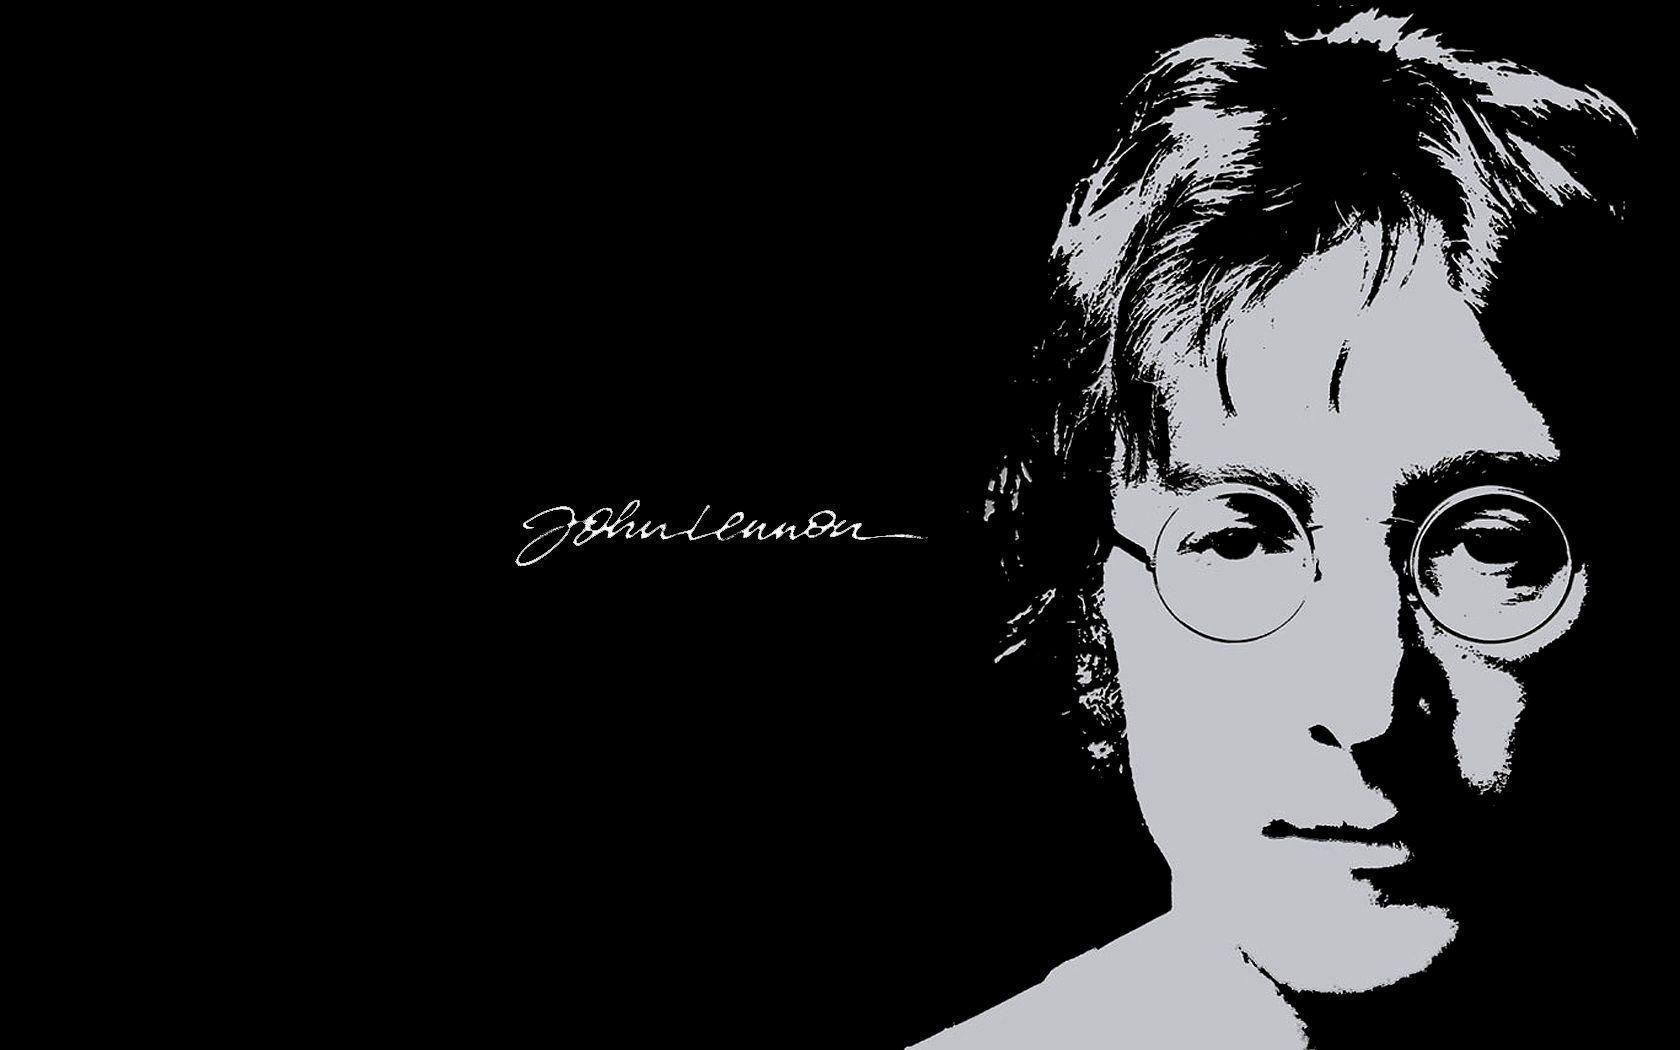 john lennon imagine album free download